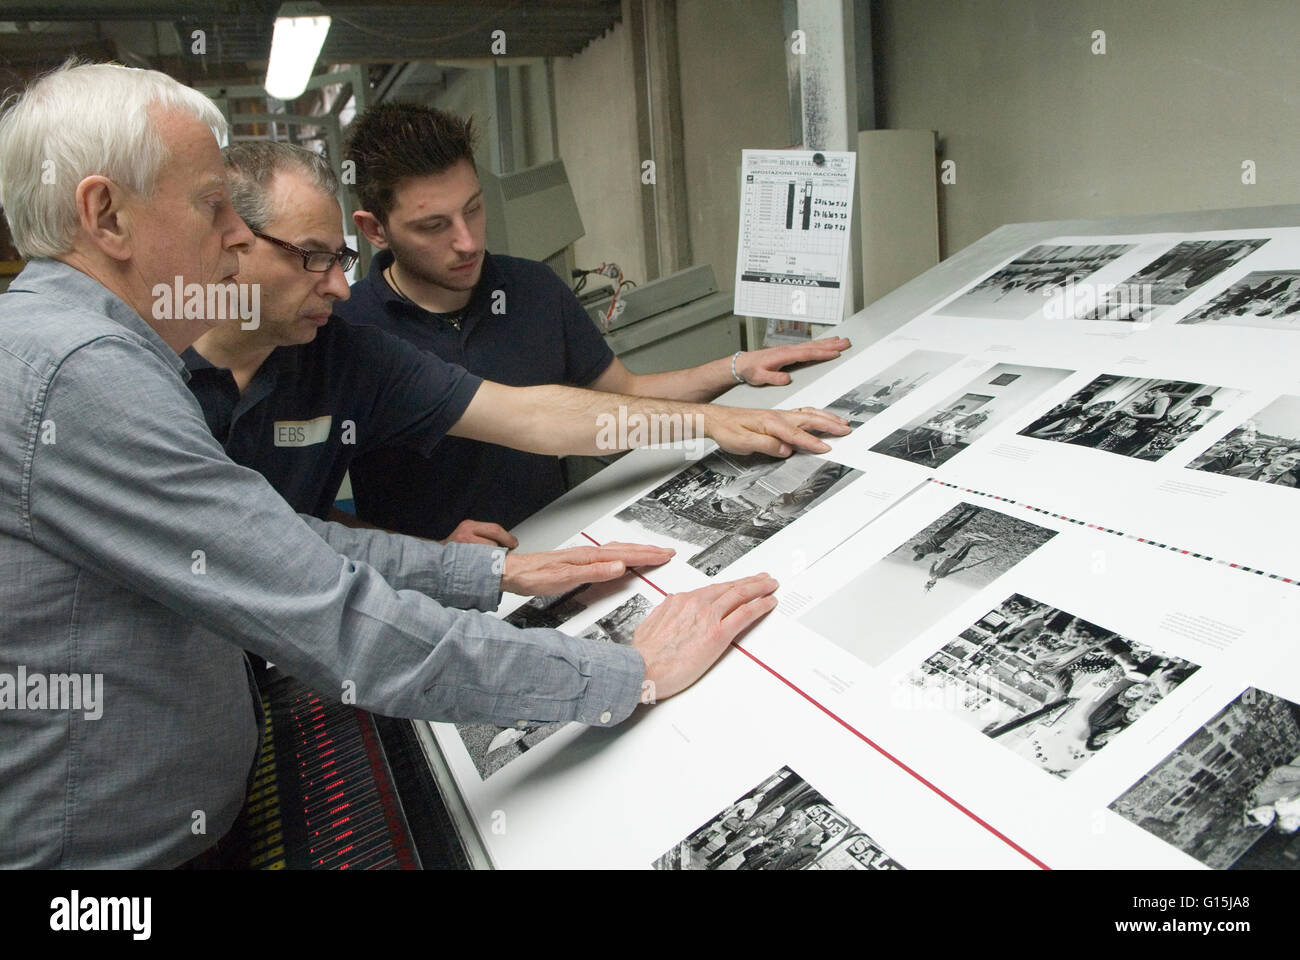 Italian printers Italy E B S Verona. Dewi Lewis an English photo book publisher checking quality HOMER SYKES - Stock Image